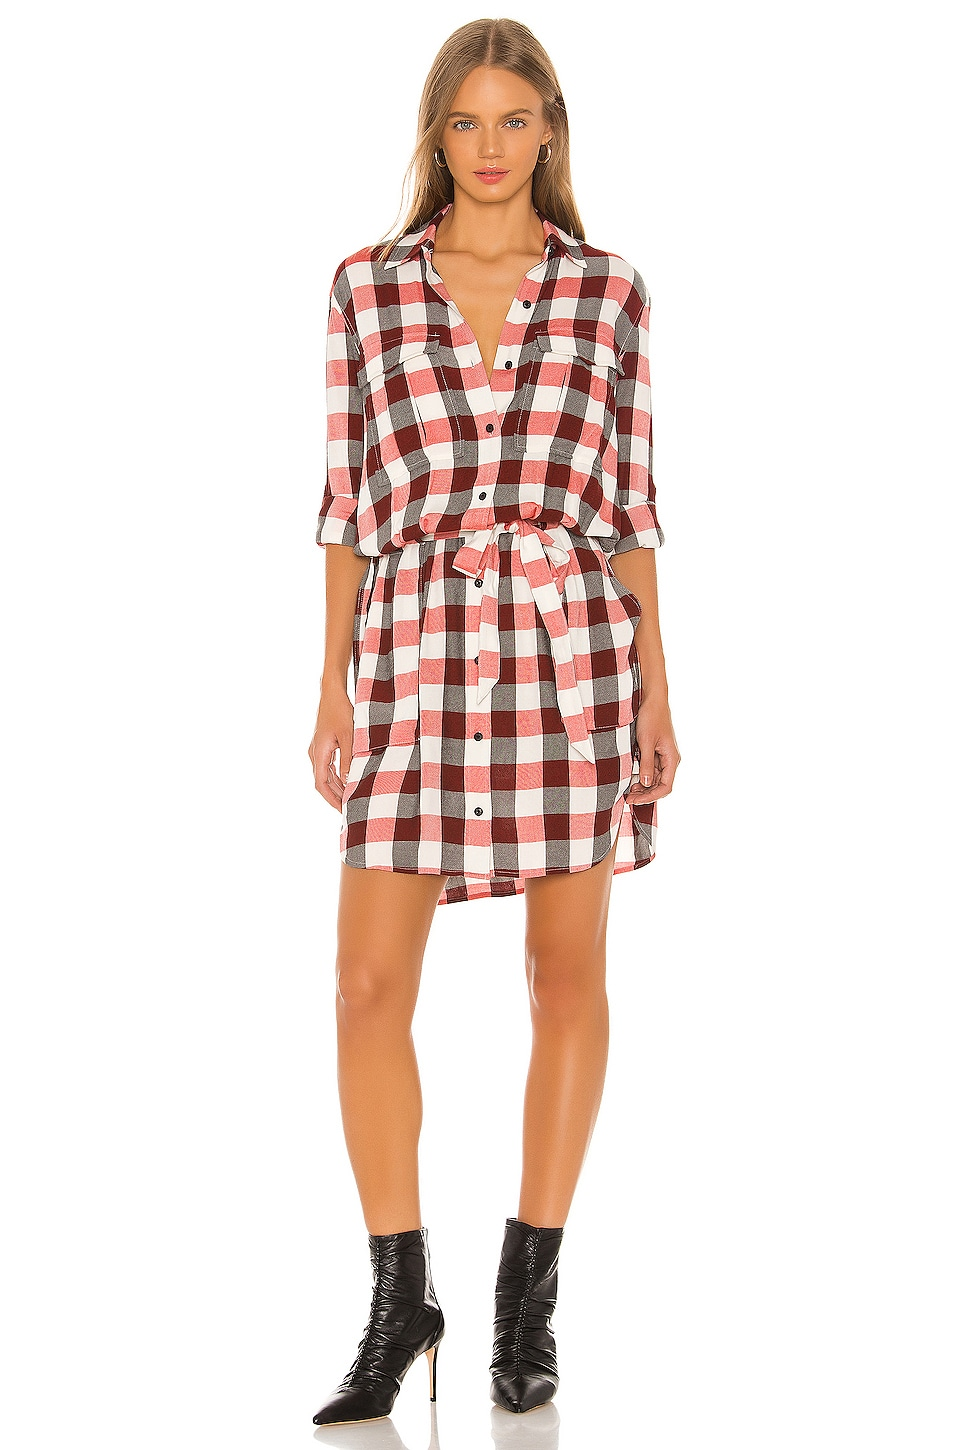 Rag & Bone Beck Dress in Red Ivory